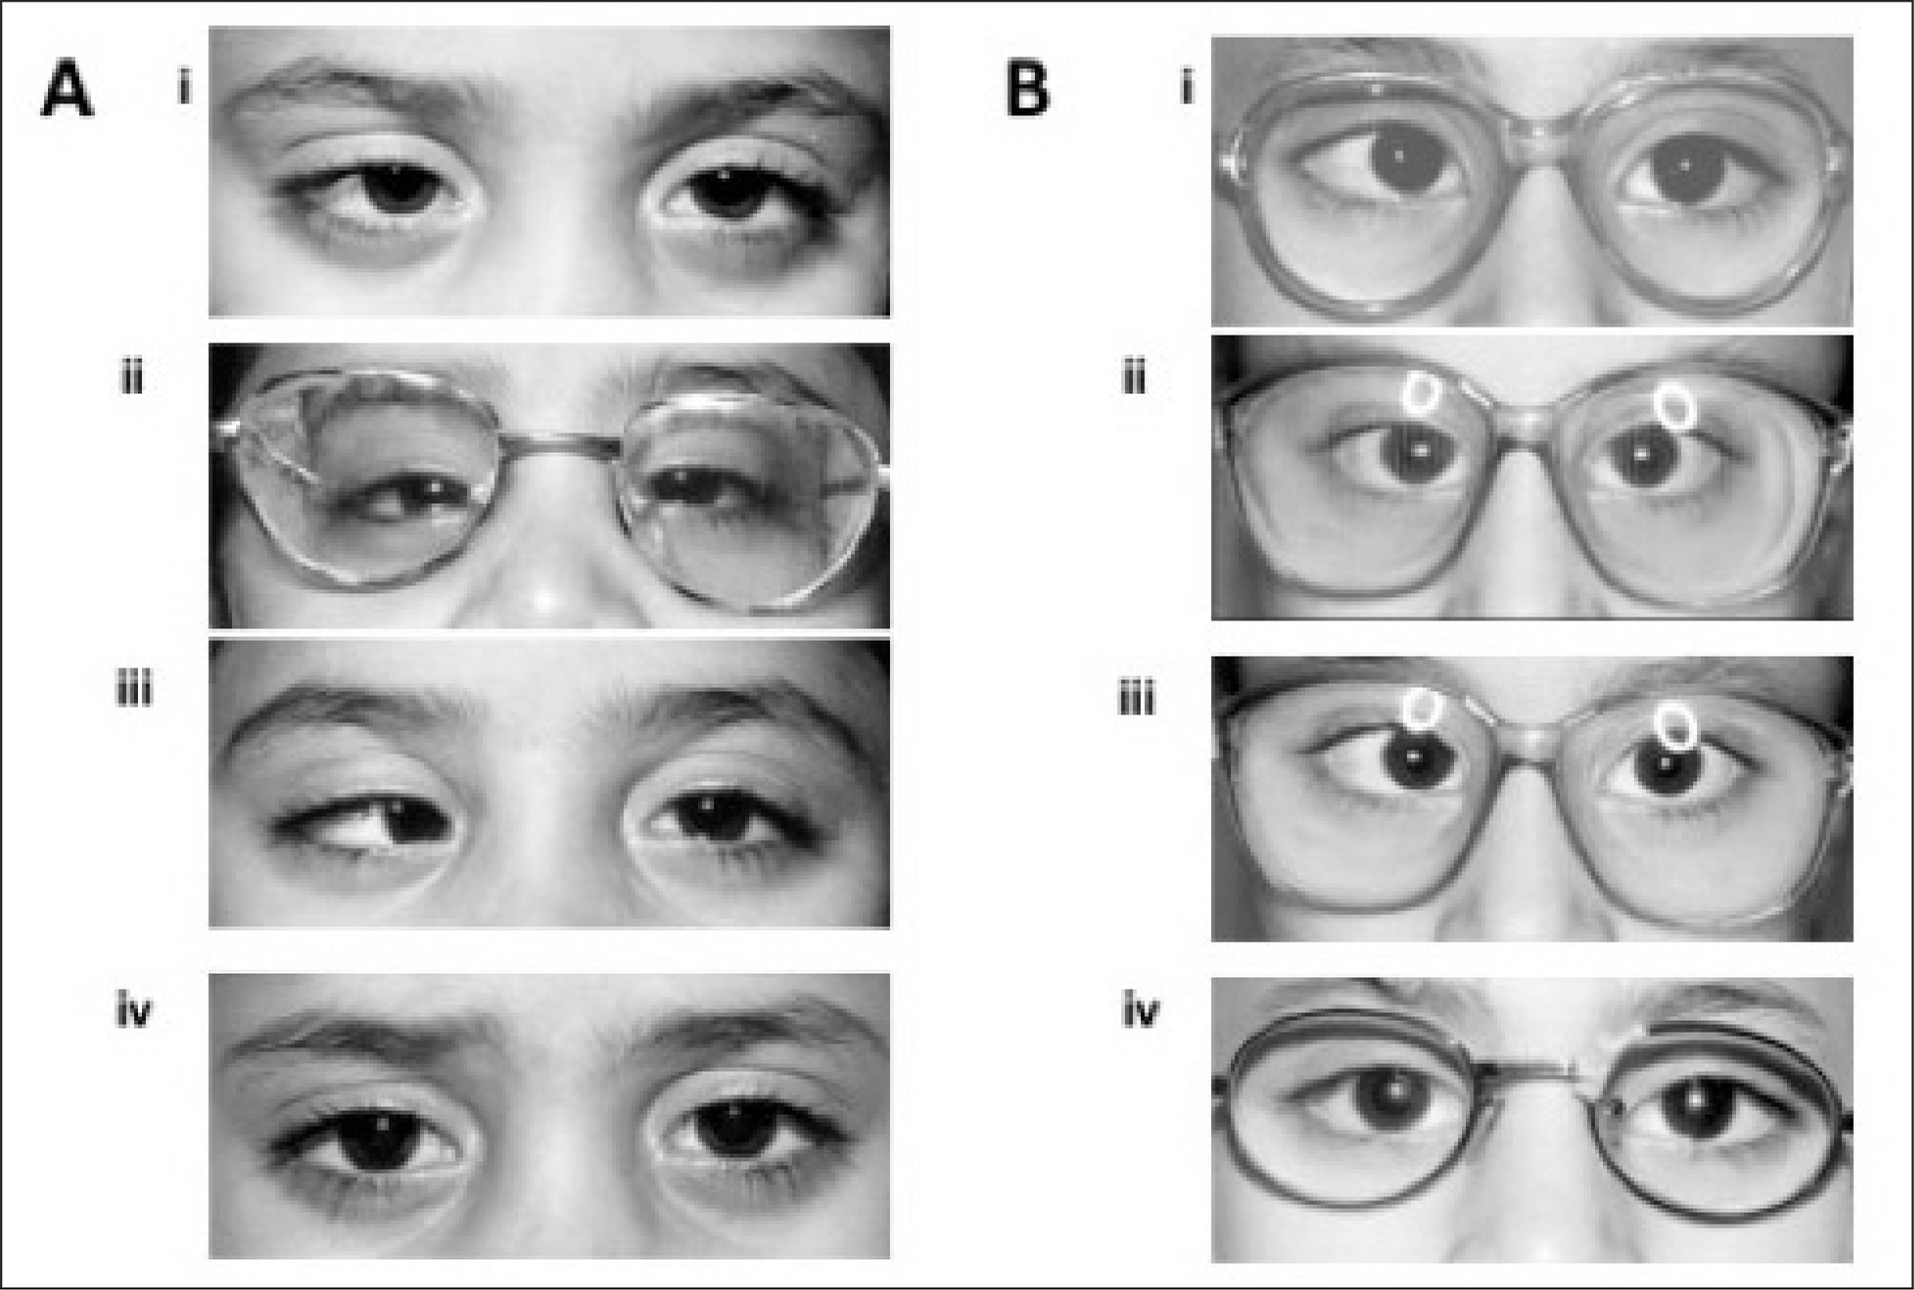 (A) Build-up of 25 prism diopters (PD). (i) Non-accommodative esotropia with an initial angle of 25 PD. (ii) Orthotropia with 50-PD Fresnel press-on prisms. (iii) Esotropia of 50 PD after prism adaptation. (iv) Orthotropia after surgery for a target angle of 50 PD (5-mm bimedial muscle recession and 5-mm right lateral rectus muscle resection). (B) No prism build-up. (i) Partially accommodative esotropia with an initial angle of 25 PD. (ii) Orthotropia through 25-PD press-on Fresnel prisms. (iii) Esotropia of 25 PD after prism adaptation. (iv) Orthotropia after surgery for a target angle of 25 PD (4-mm bimedial muscle recession).